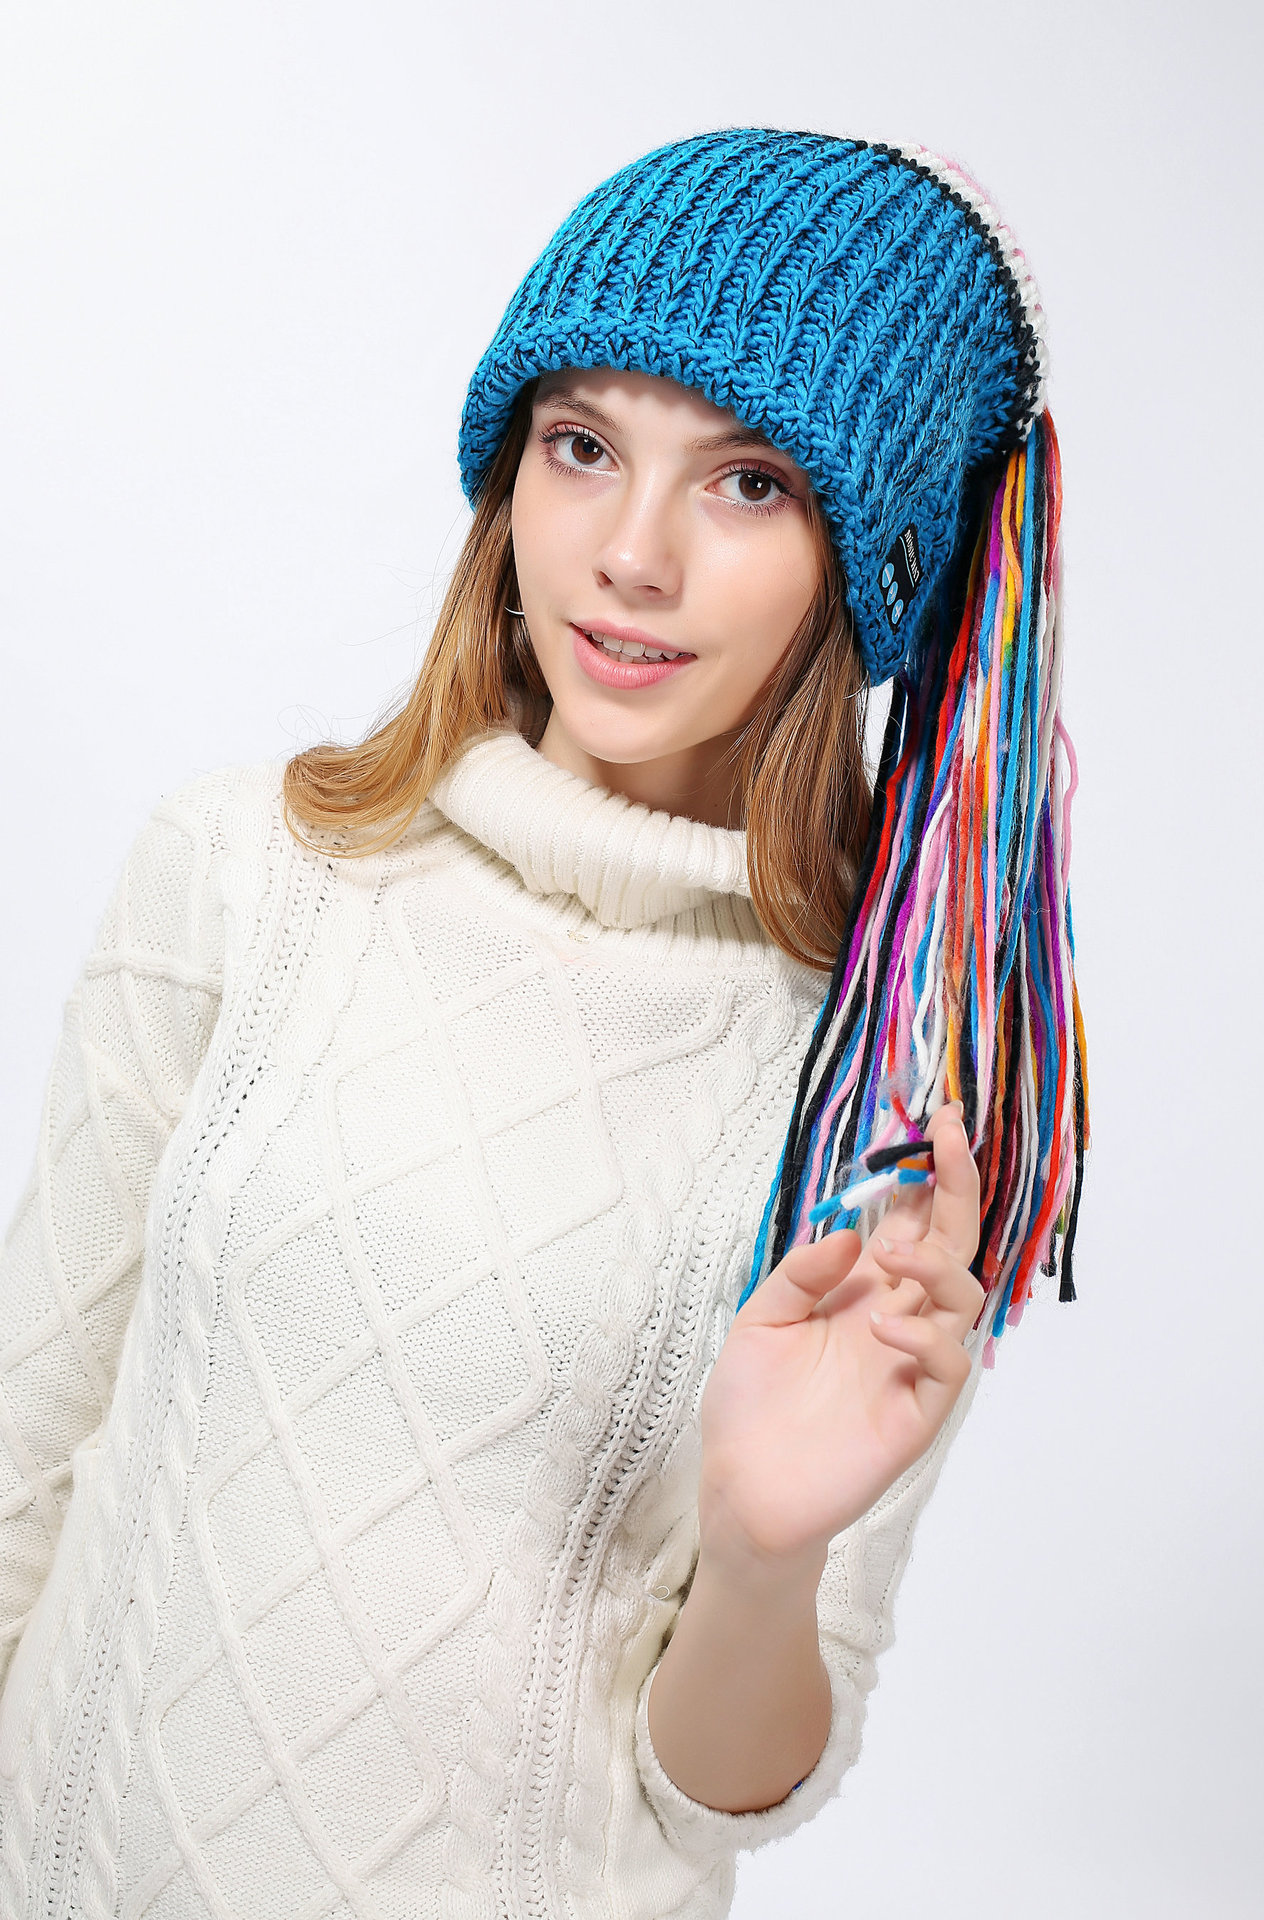 Apparel - Chic Winter Warm Knit Bluetooth Beanie with Wireless Headphone Headset for Outdoor Sport